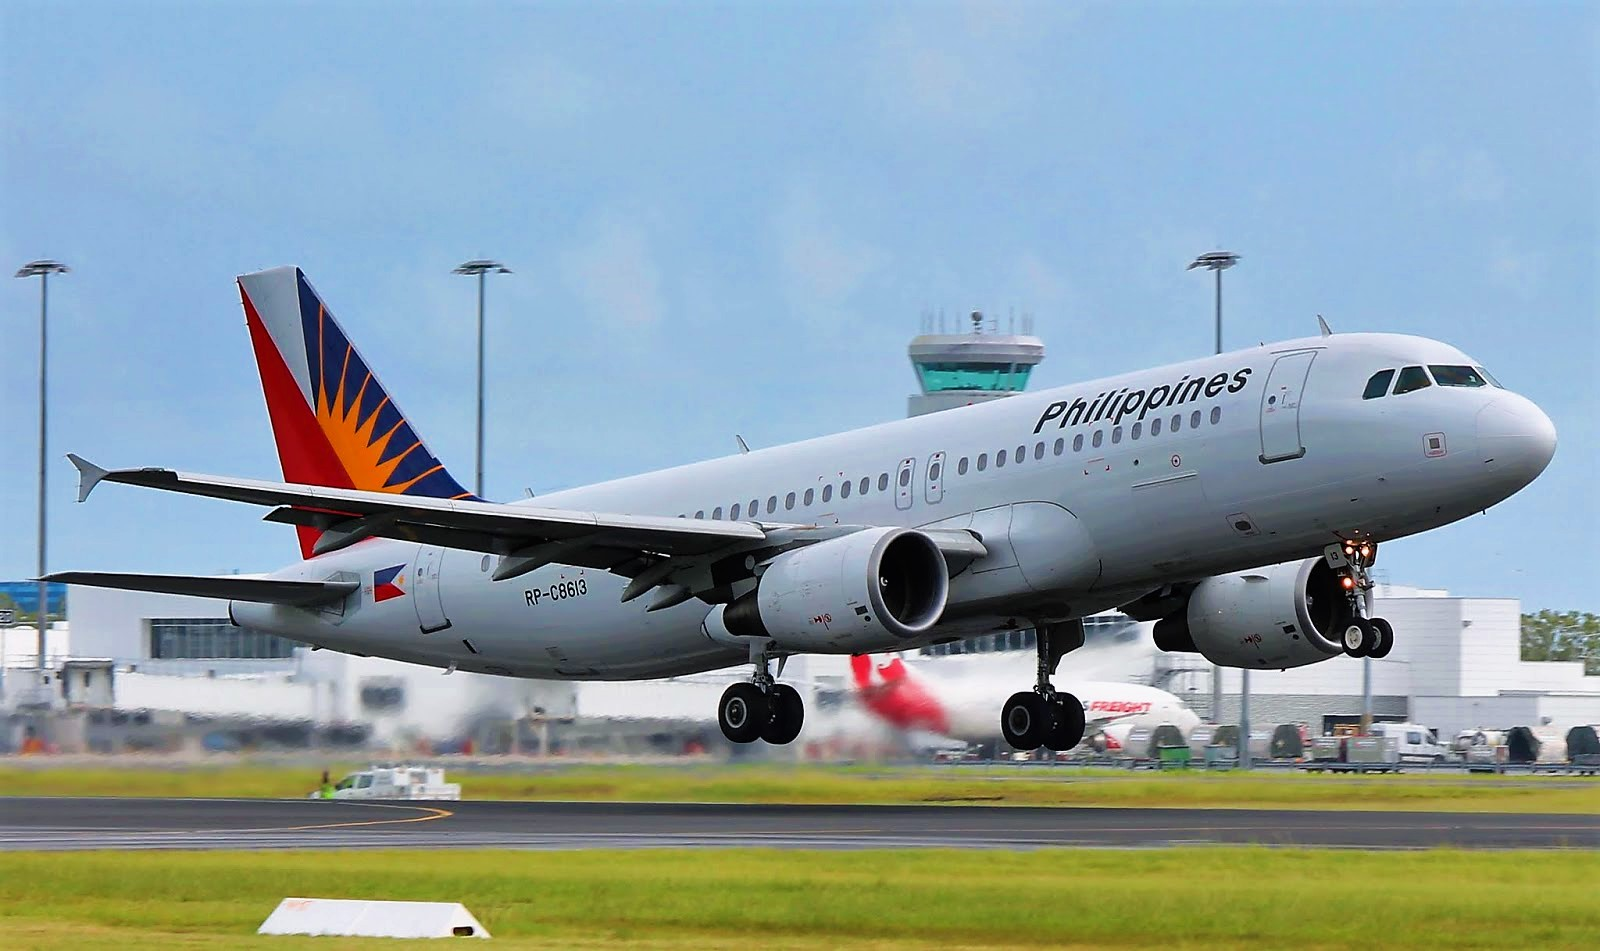 TRAVEL ADVISORY: Philippine Airlines advises flight schedule changes due to temporary closure of Clark International Airport